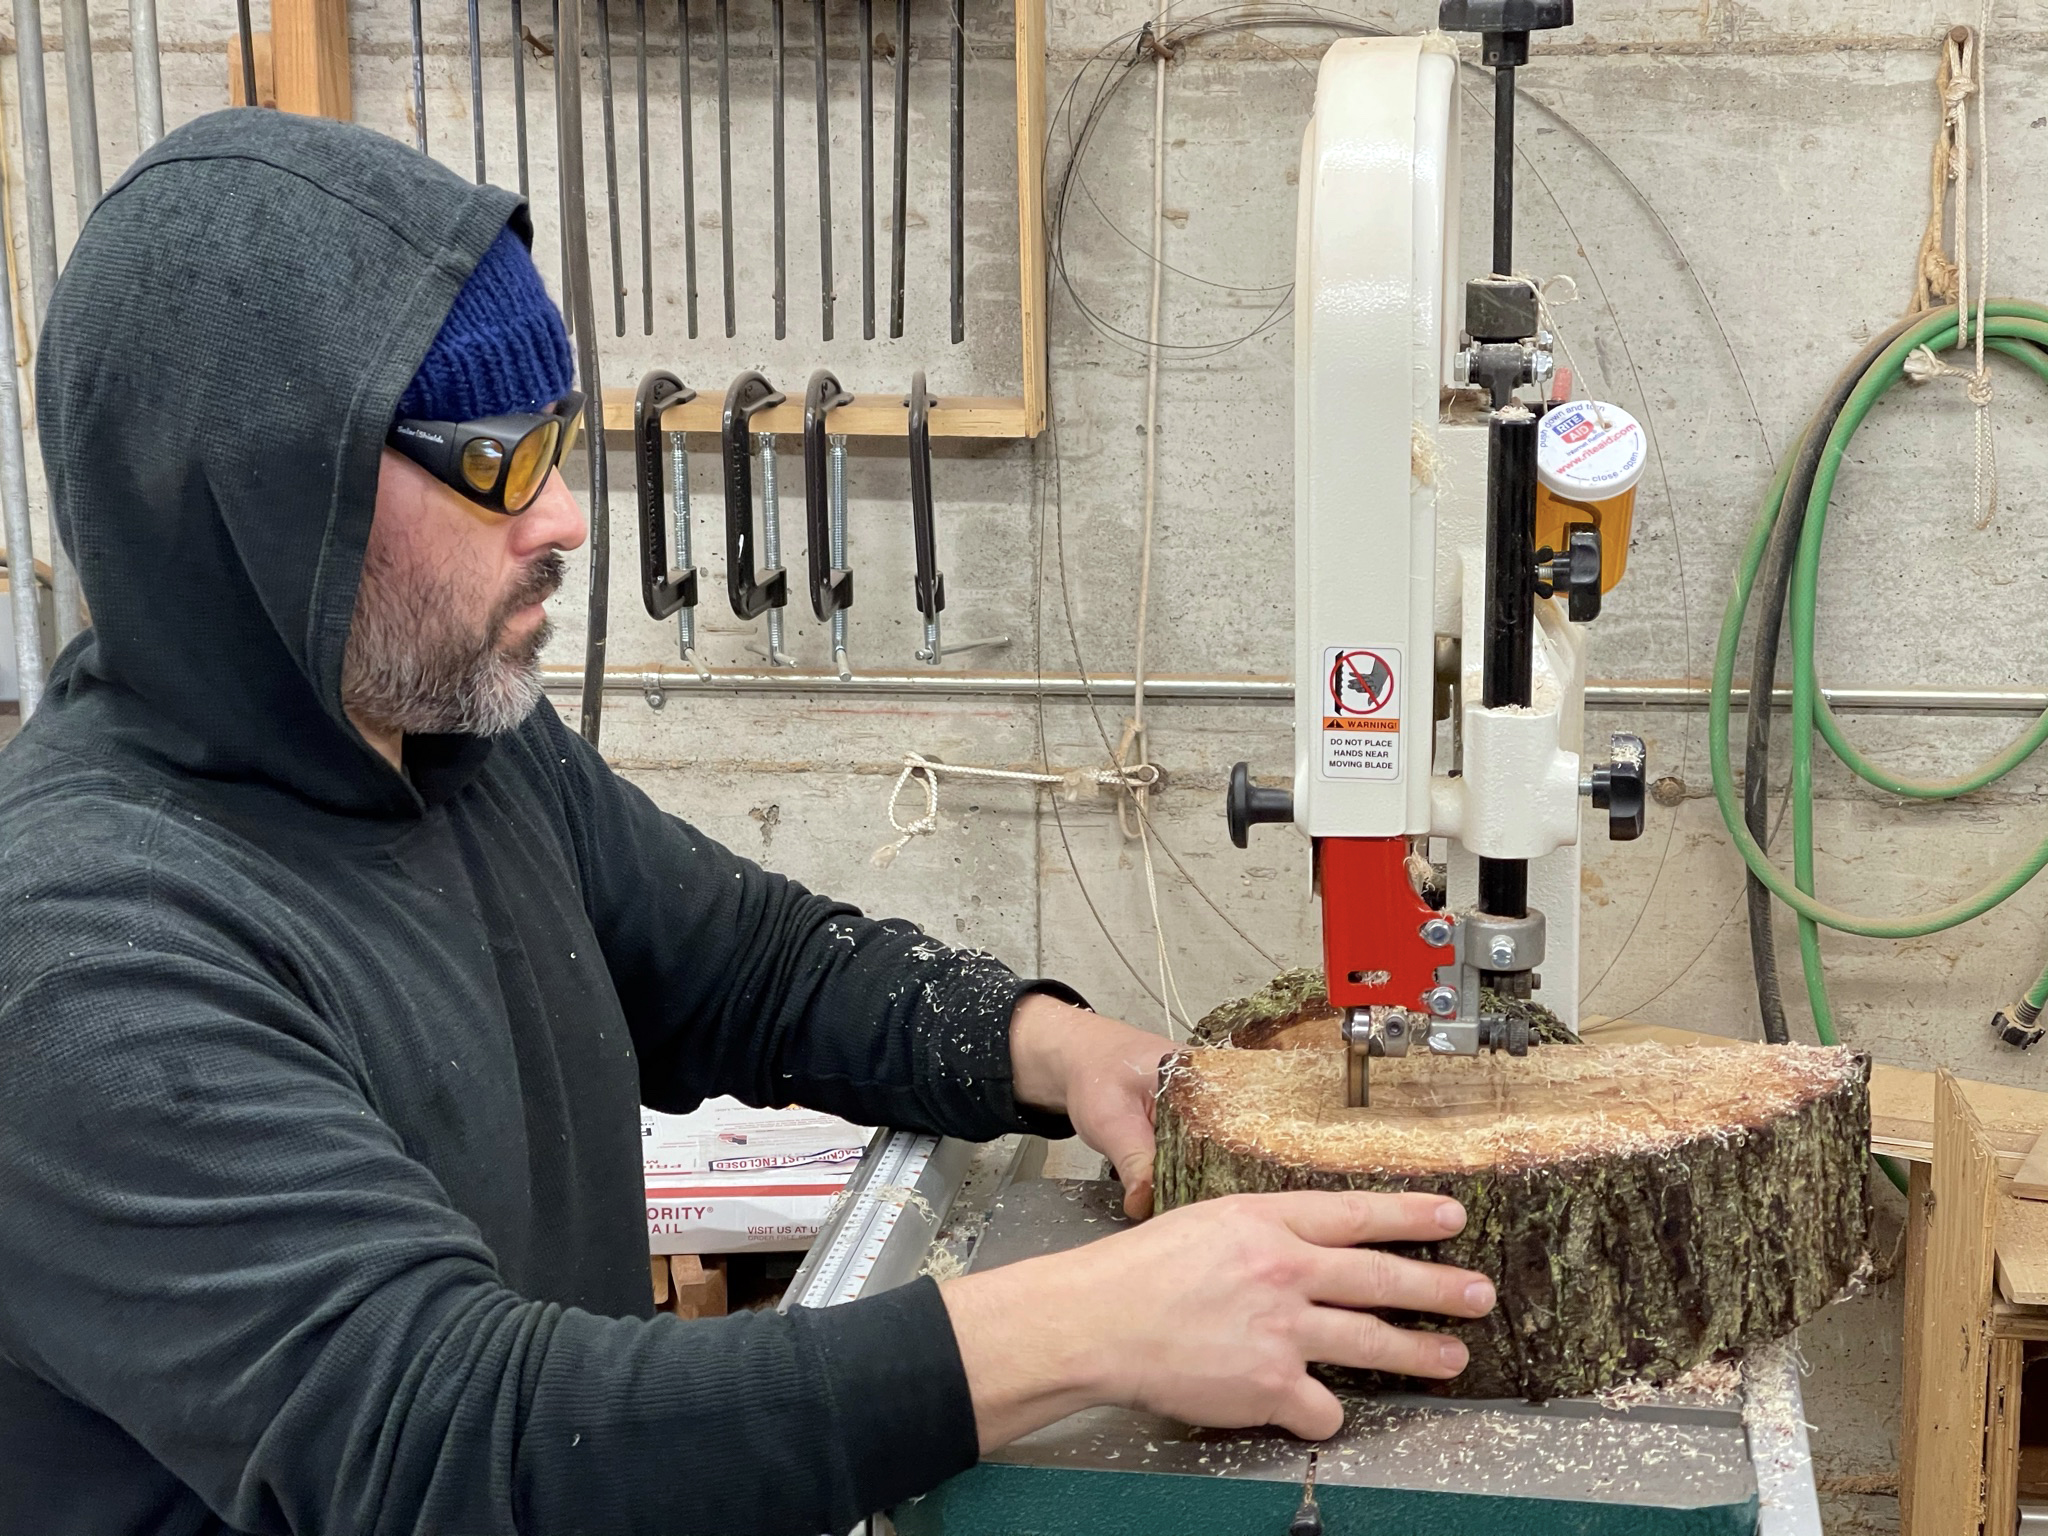 Artist Anthony May using bandsaw to cut log rounds into smaller pieces for Price Sculpture Forest installation